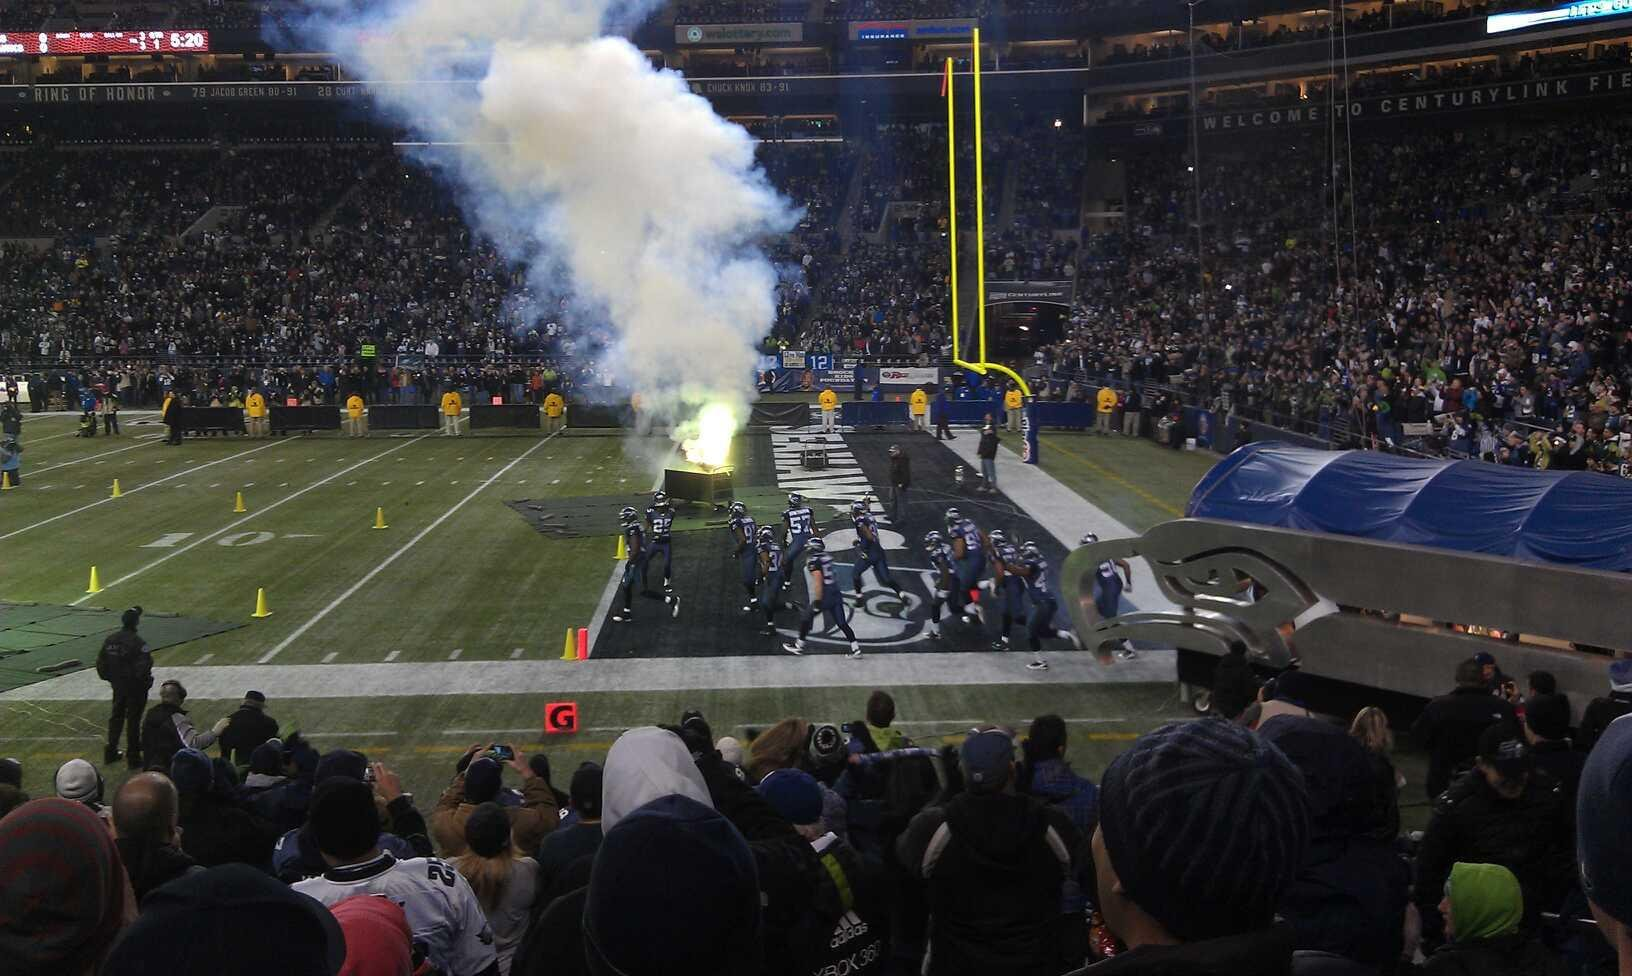 Seahawks entering the field